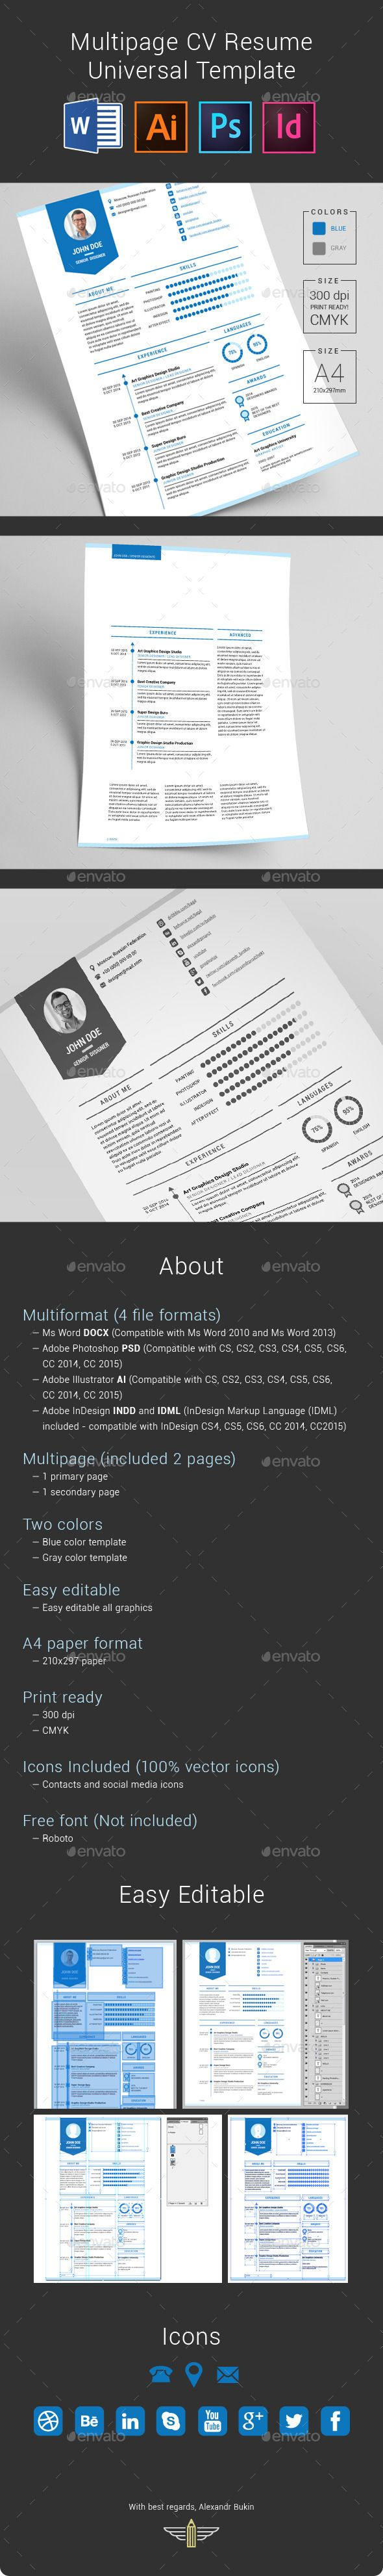 Multipage Cv Resume Universal Template  Template Simple Resume